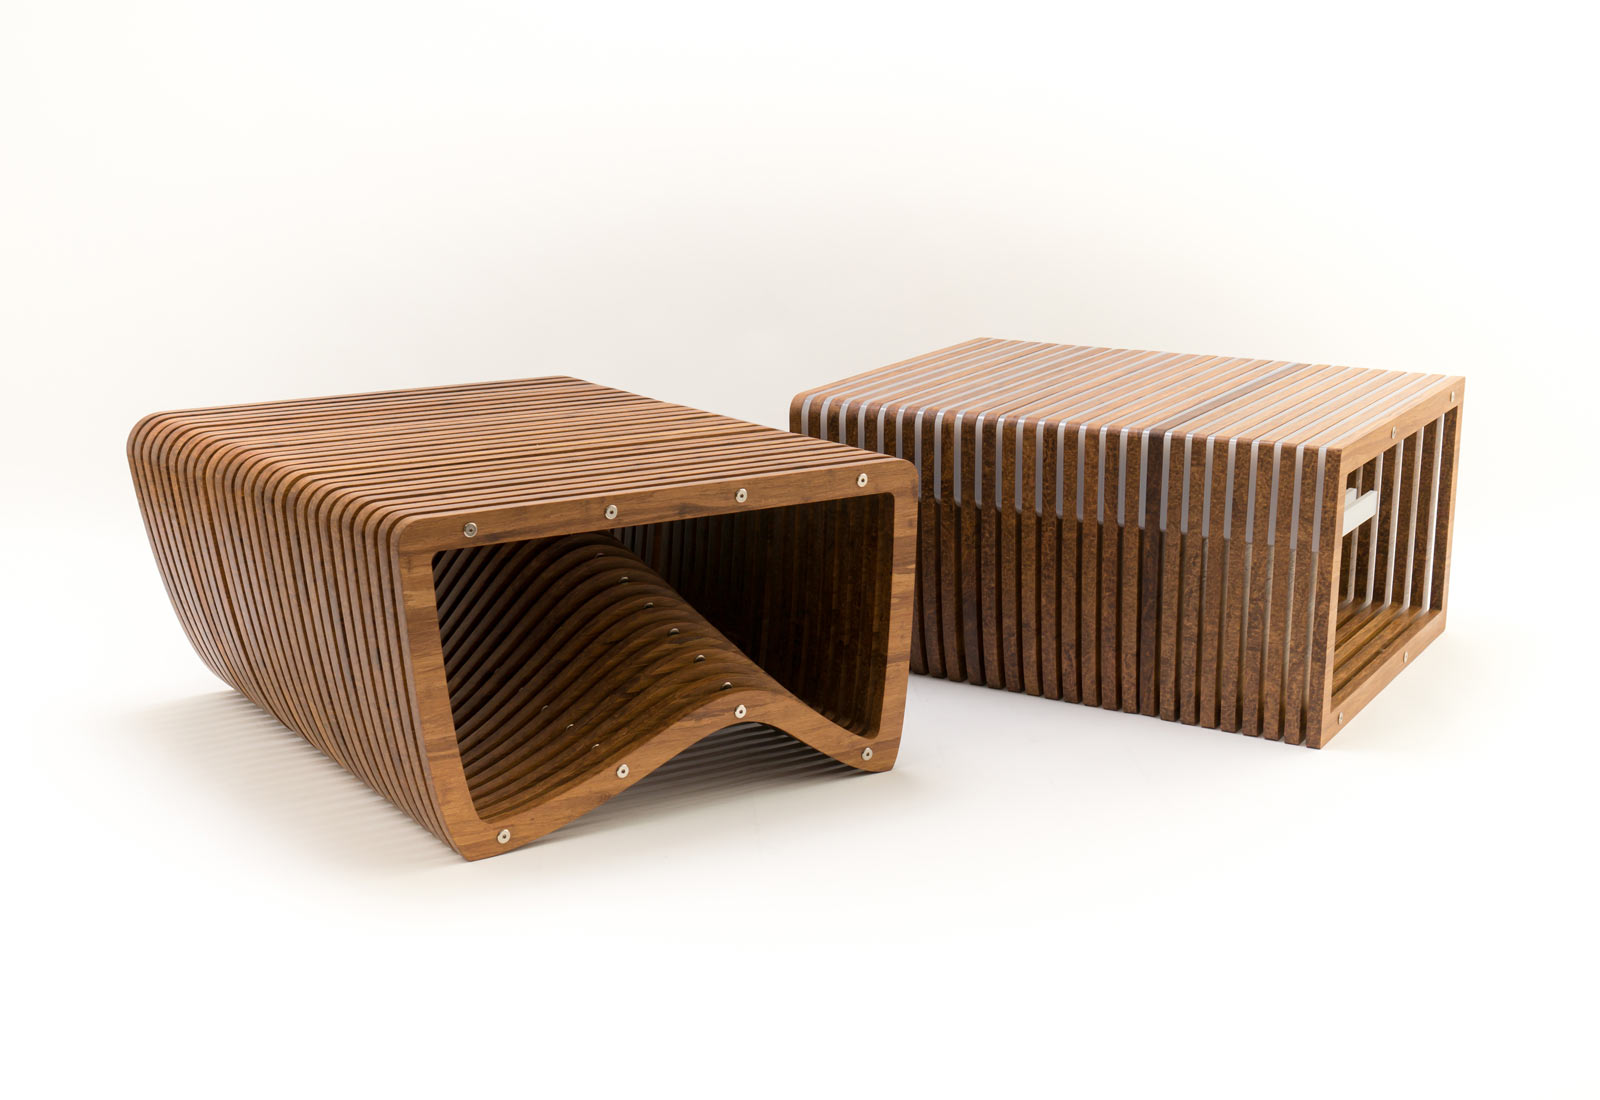 squarish, modular low table, ja-workshop